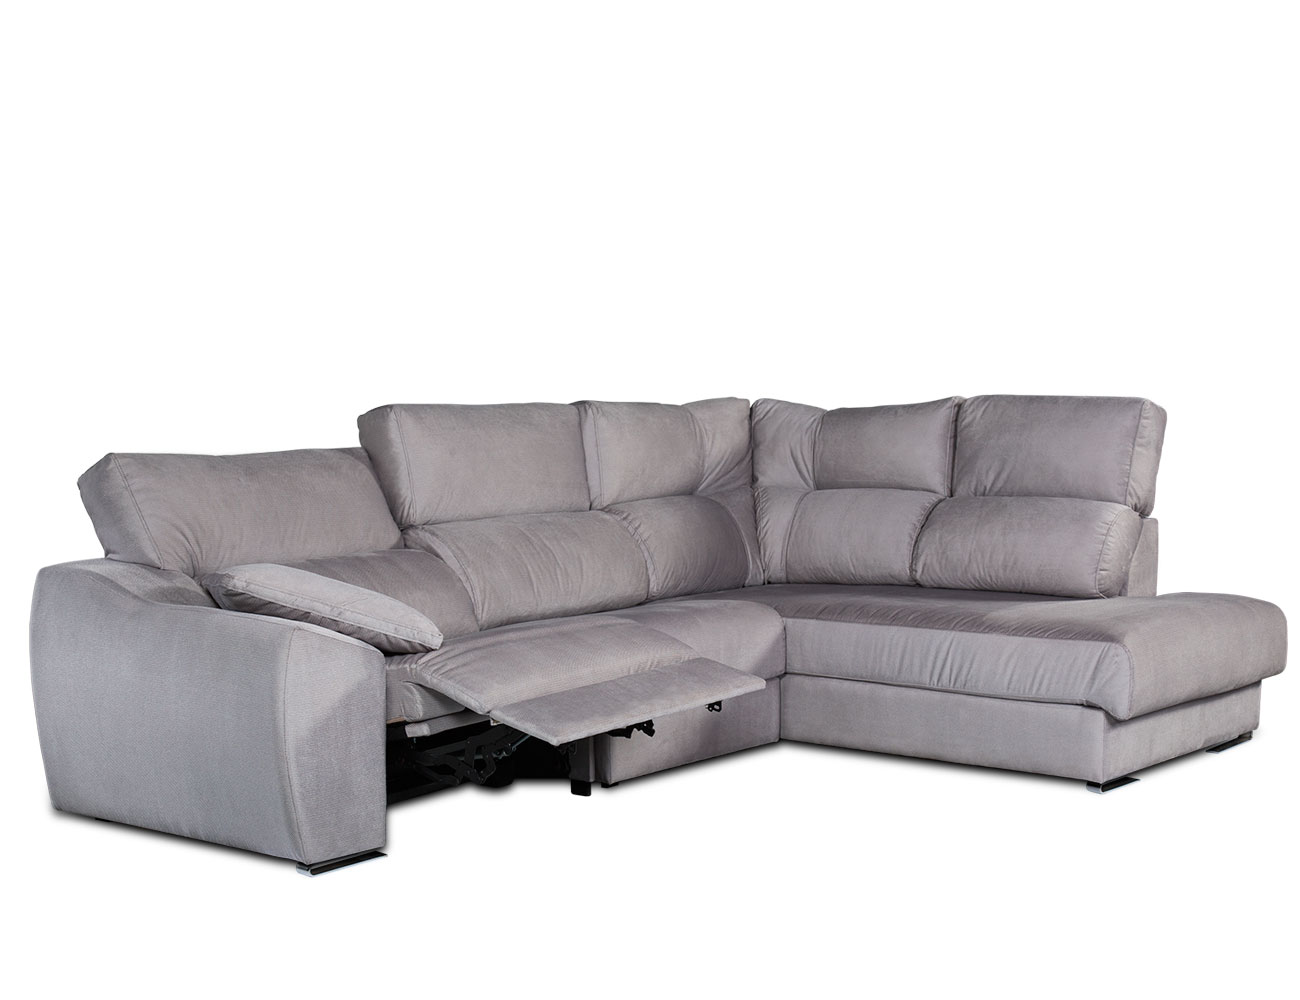 Sofa chaiselongue rincon electrico 26